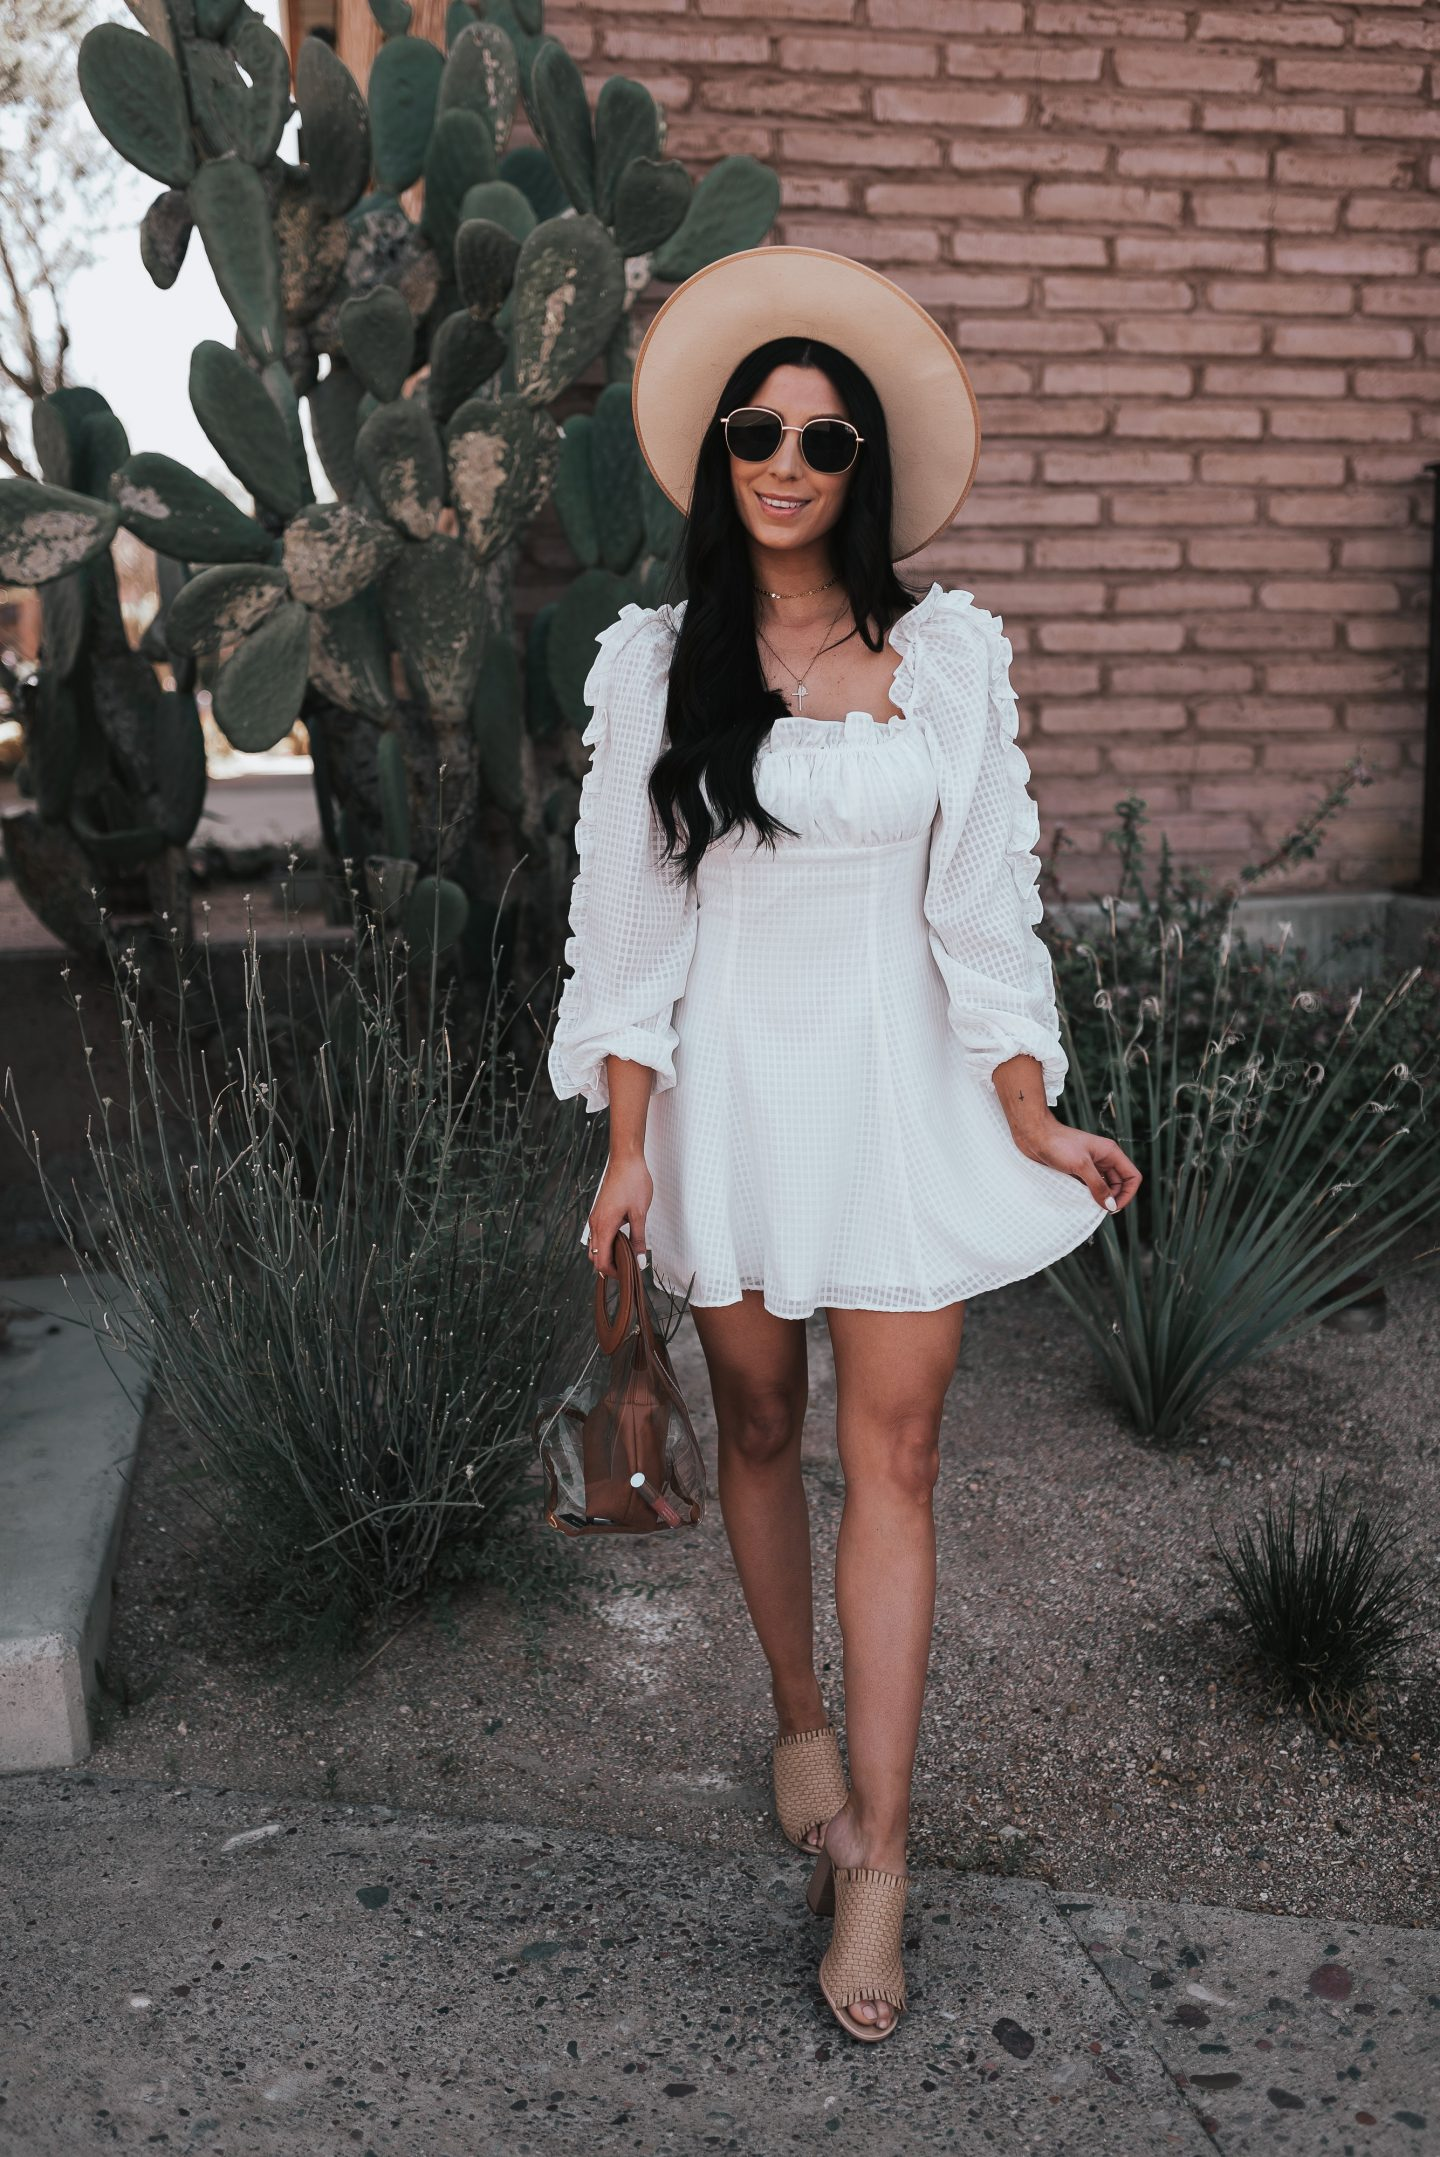 Fav Photoshoot Spots – Scottsdale Edition